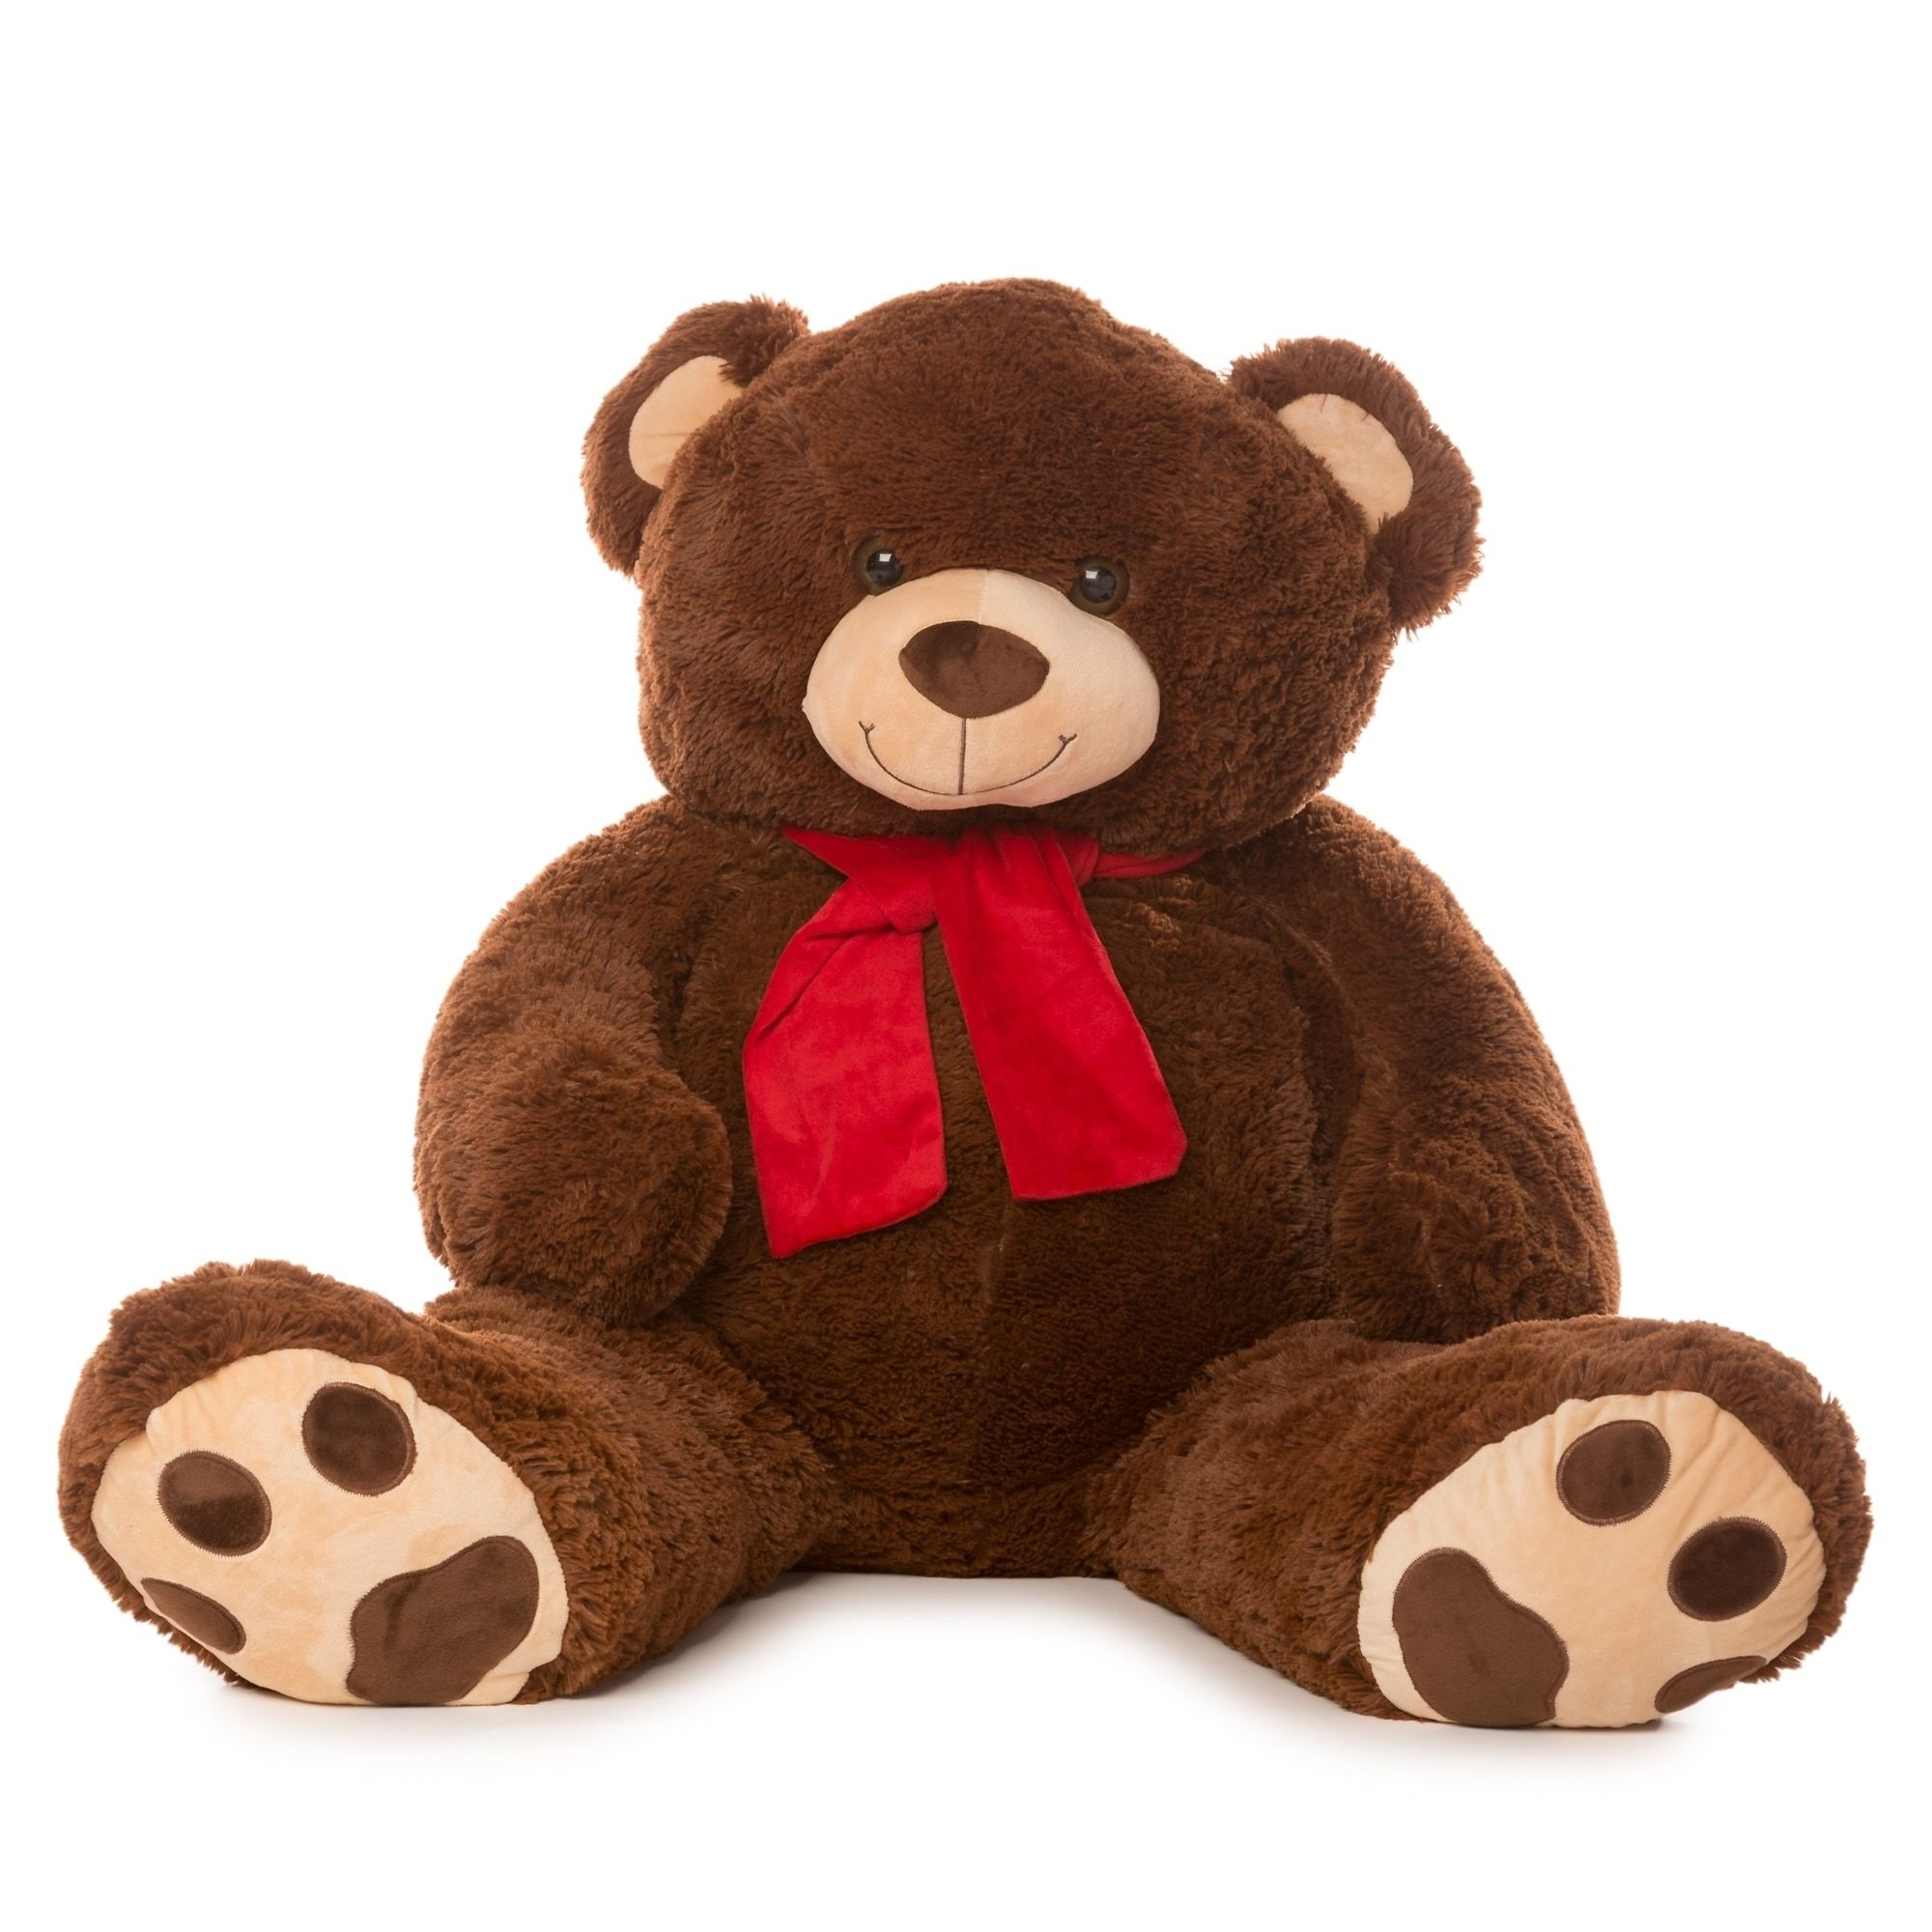 Best Made Toys 50 Bear with Scarf Giant Plush Animal Over 4 feet